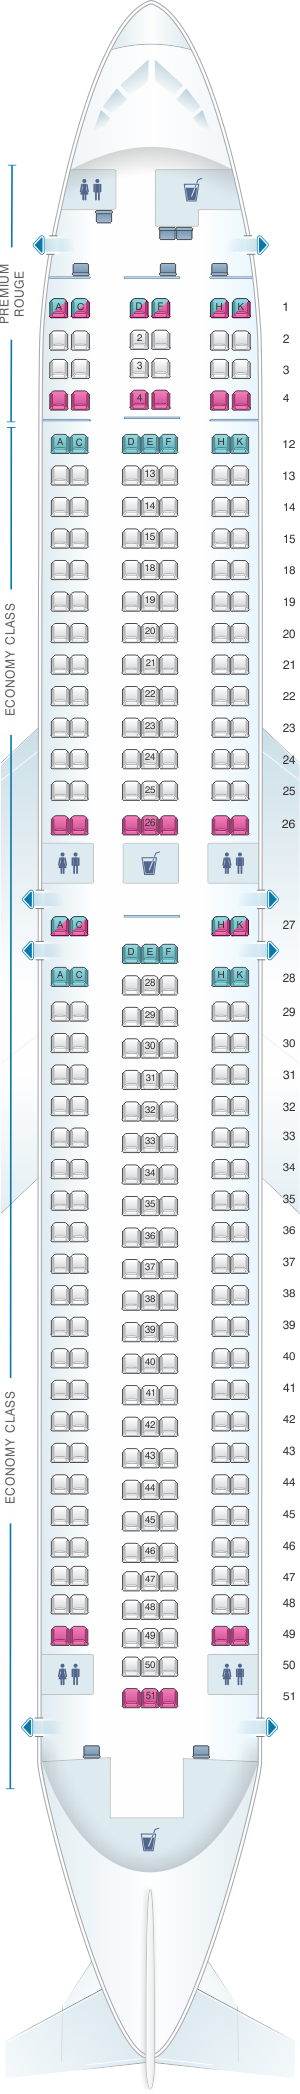 Seat map for Air Canada Boeing B767 300ER (763) Rouge